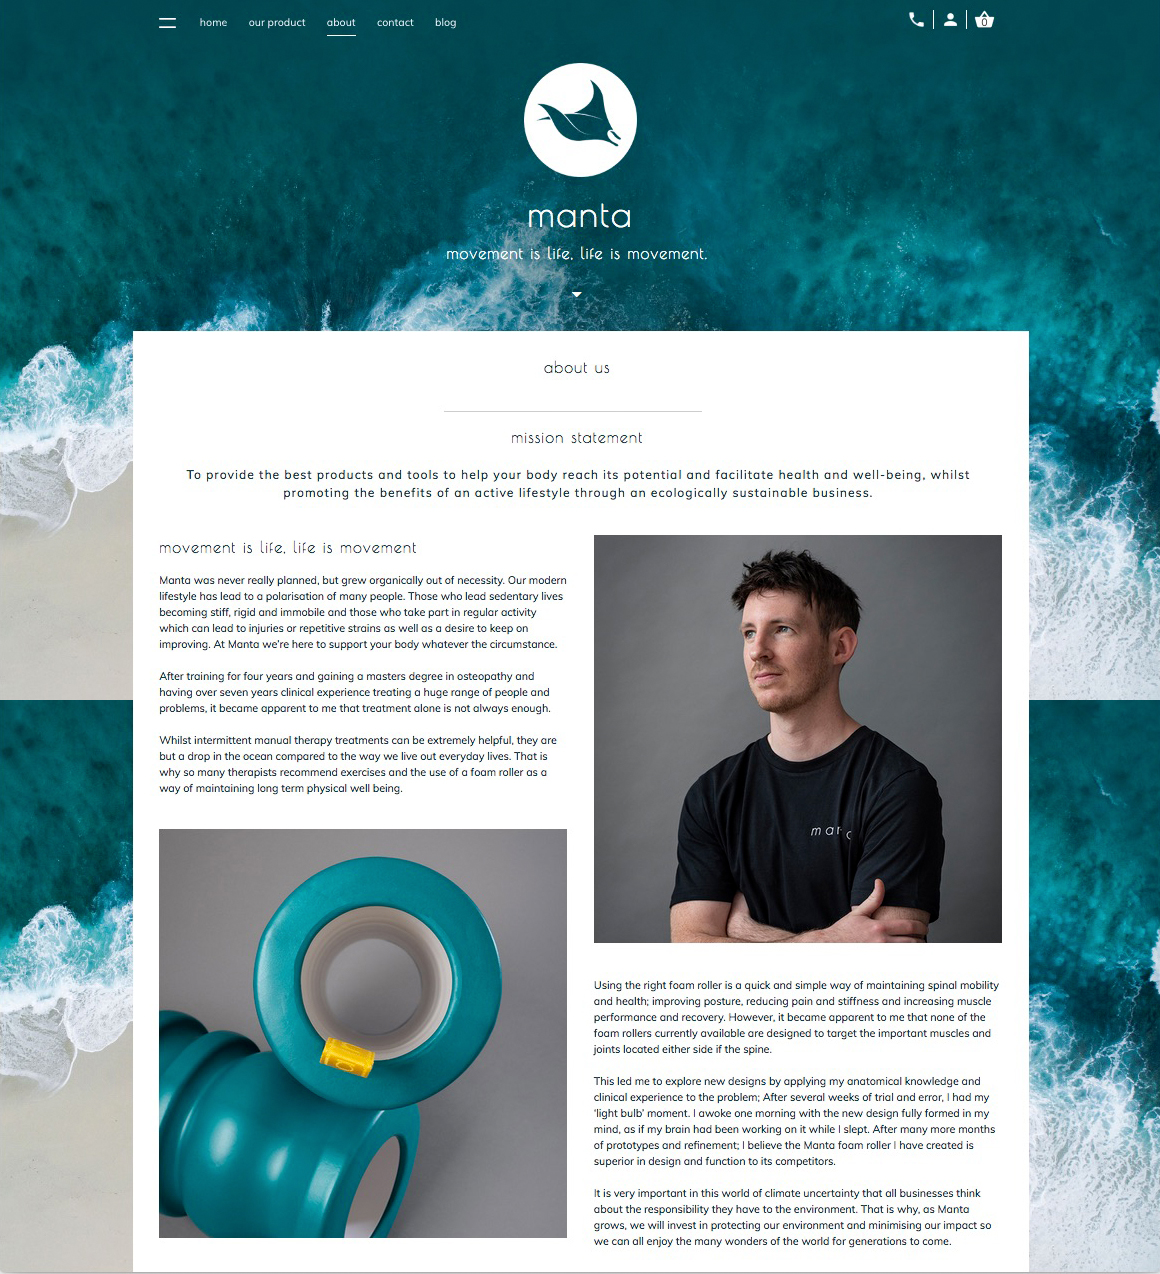 Product and portrait photography for a health and fitness start up company